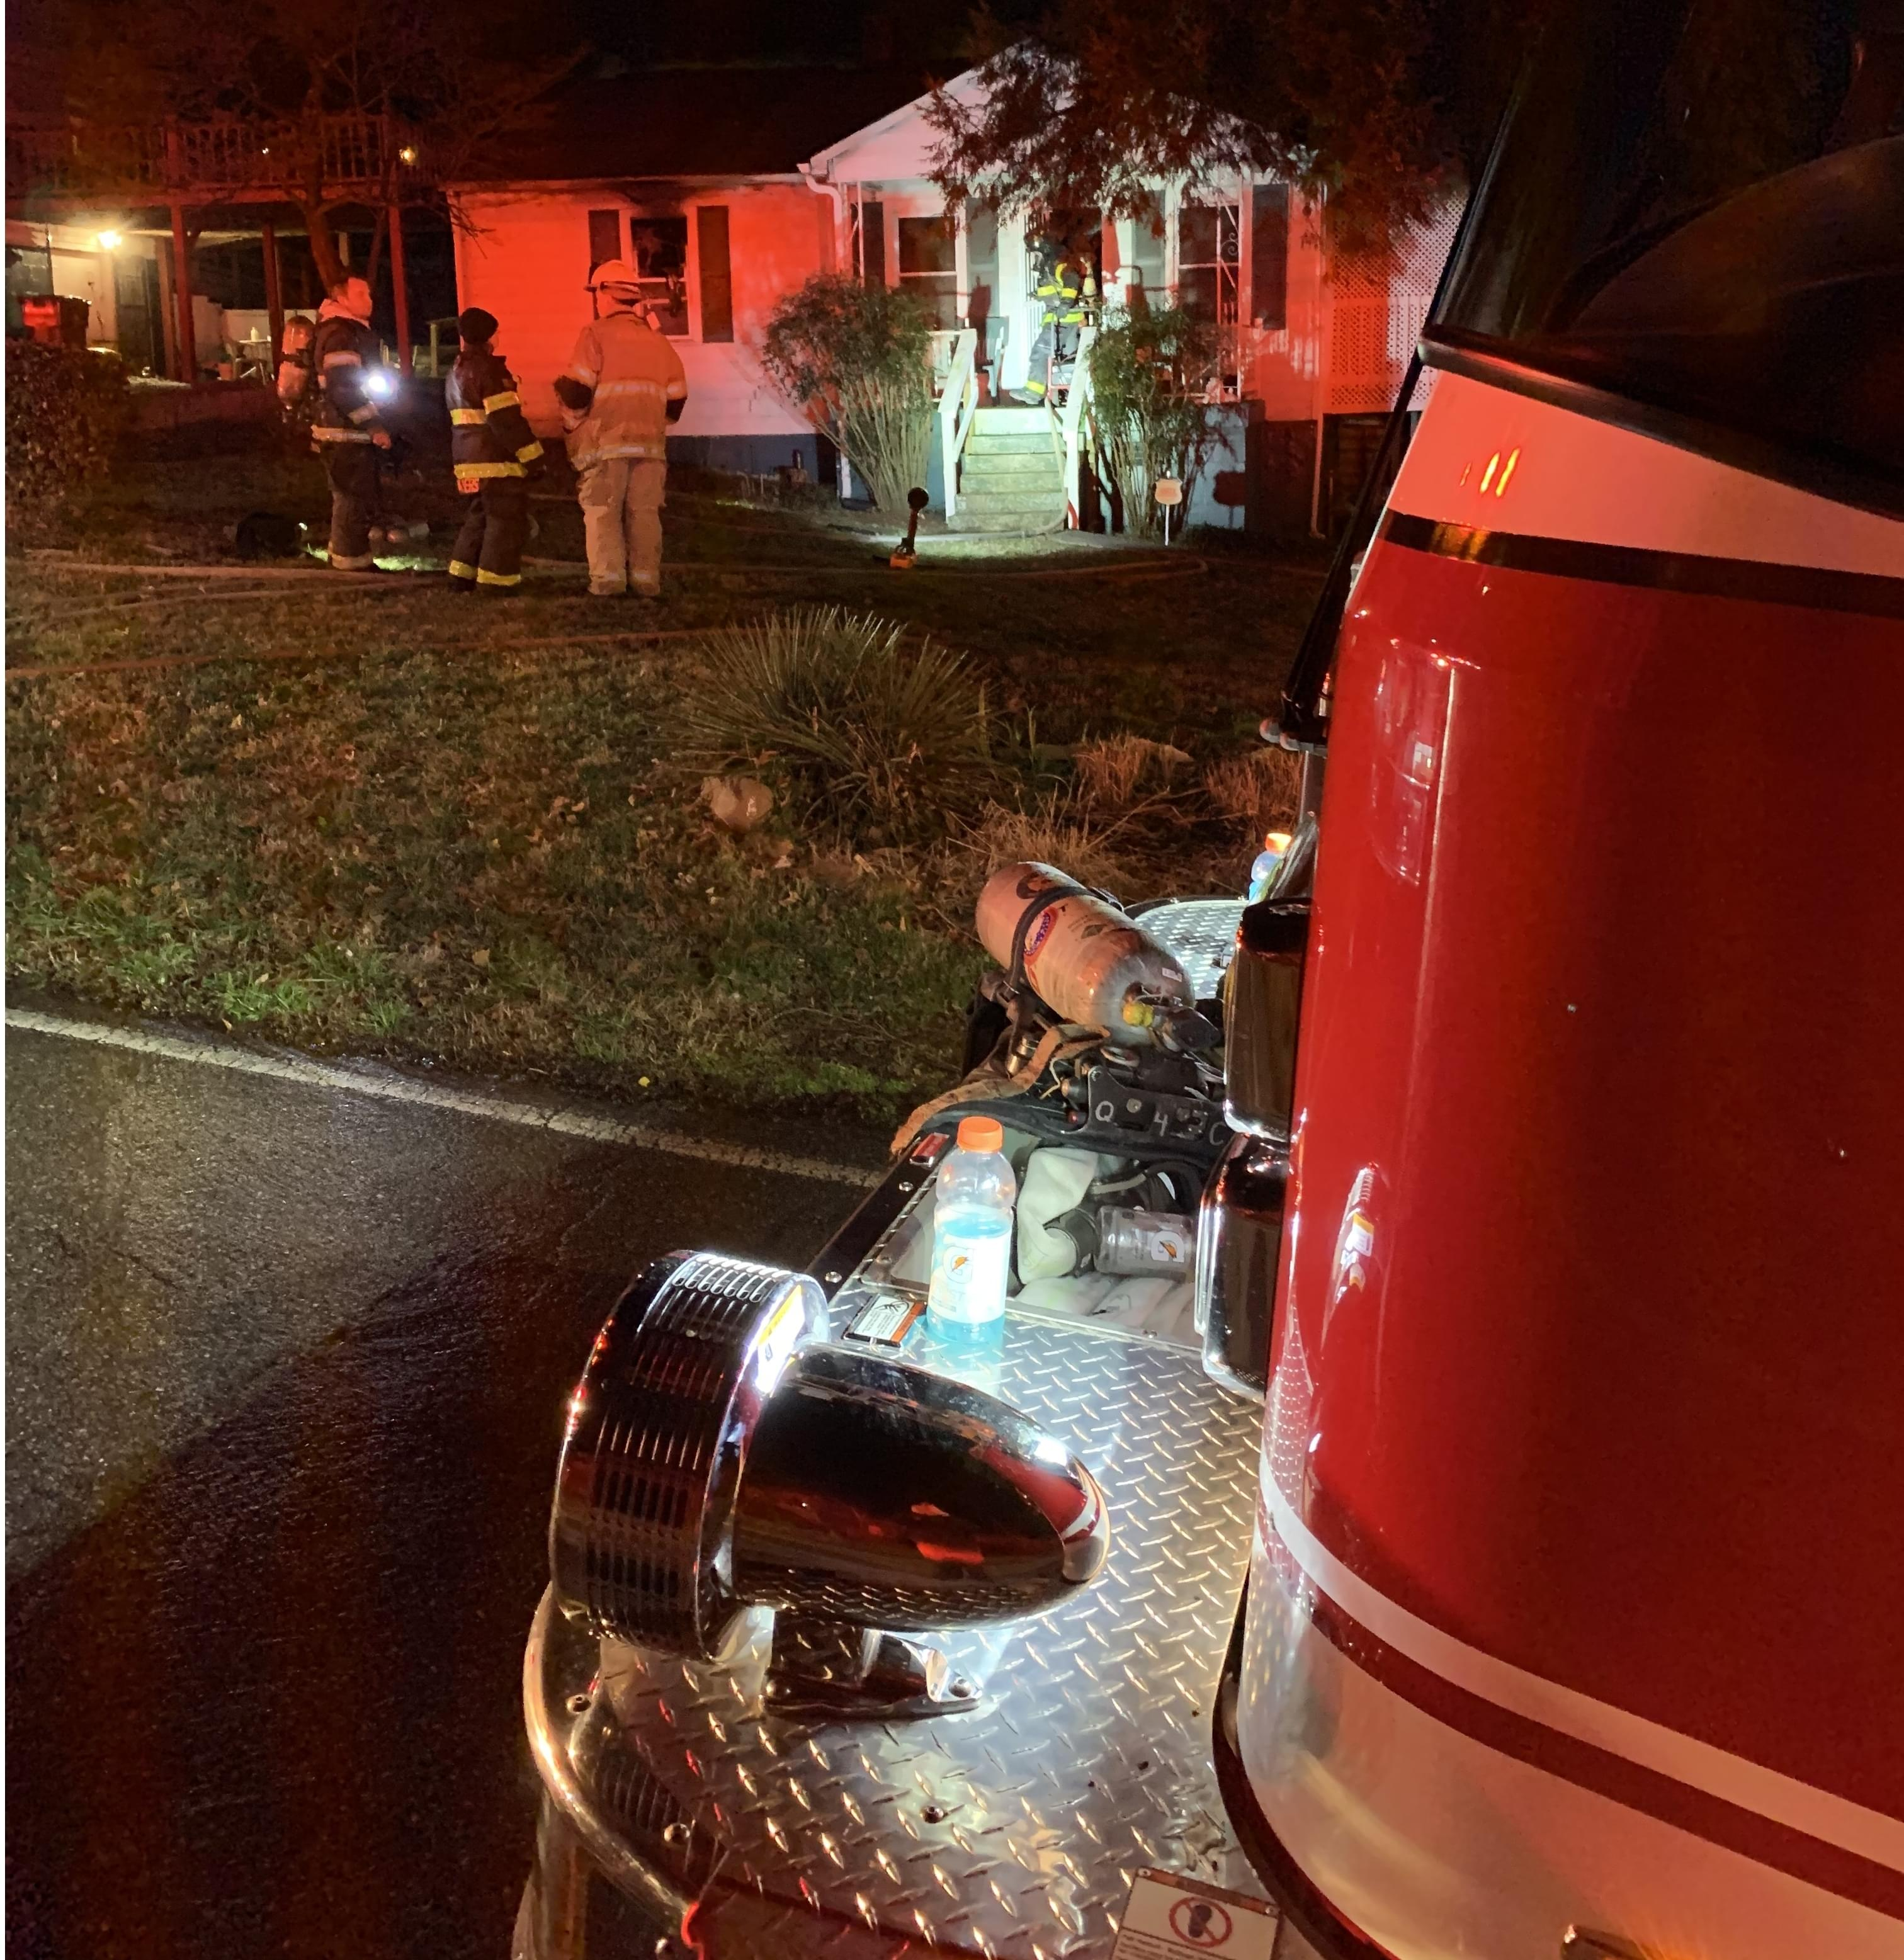 House Fire Overnight in East Knoxville